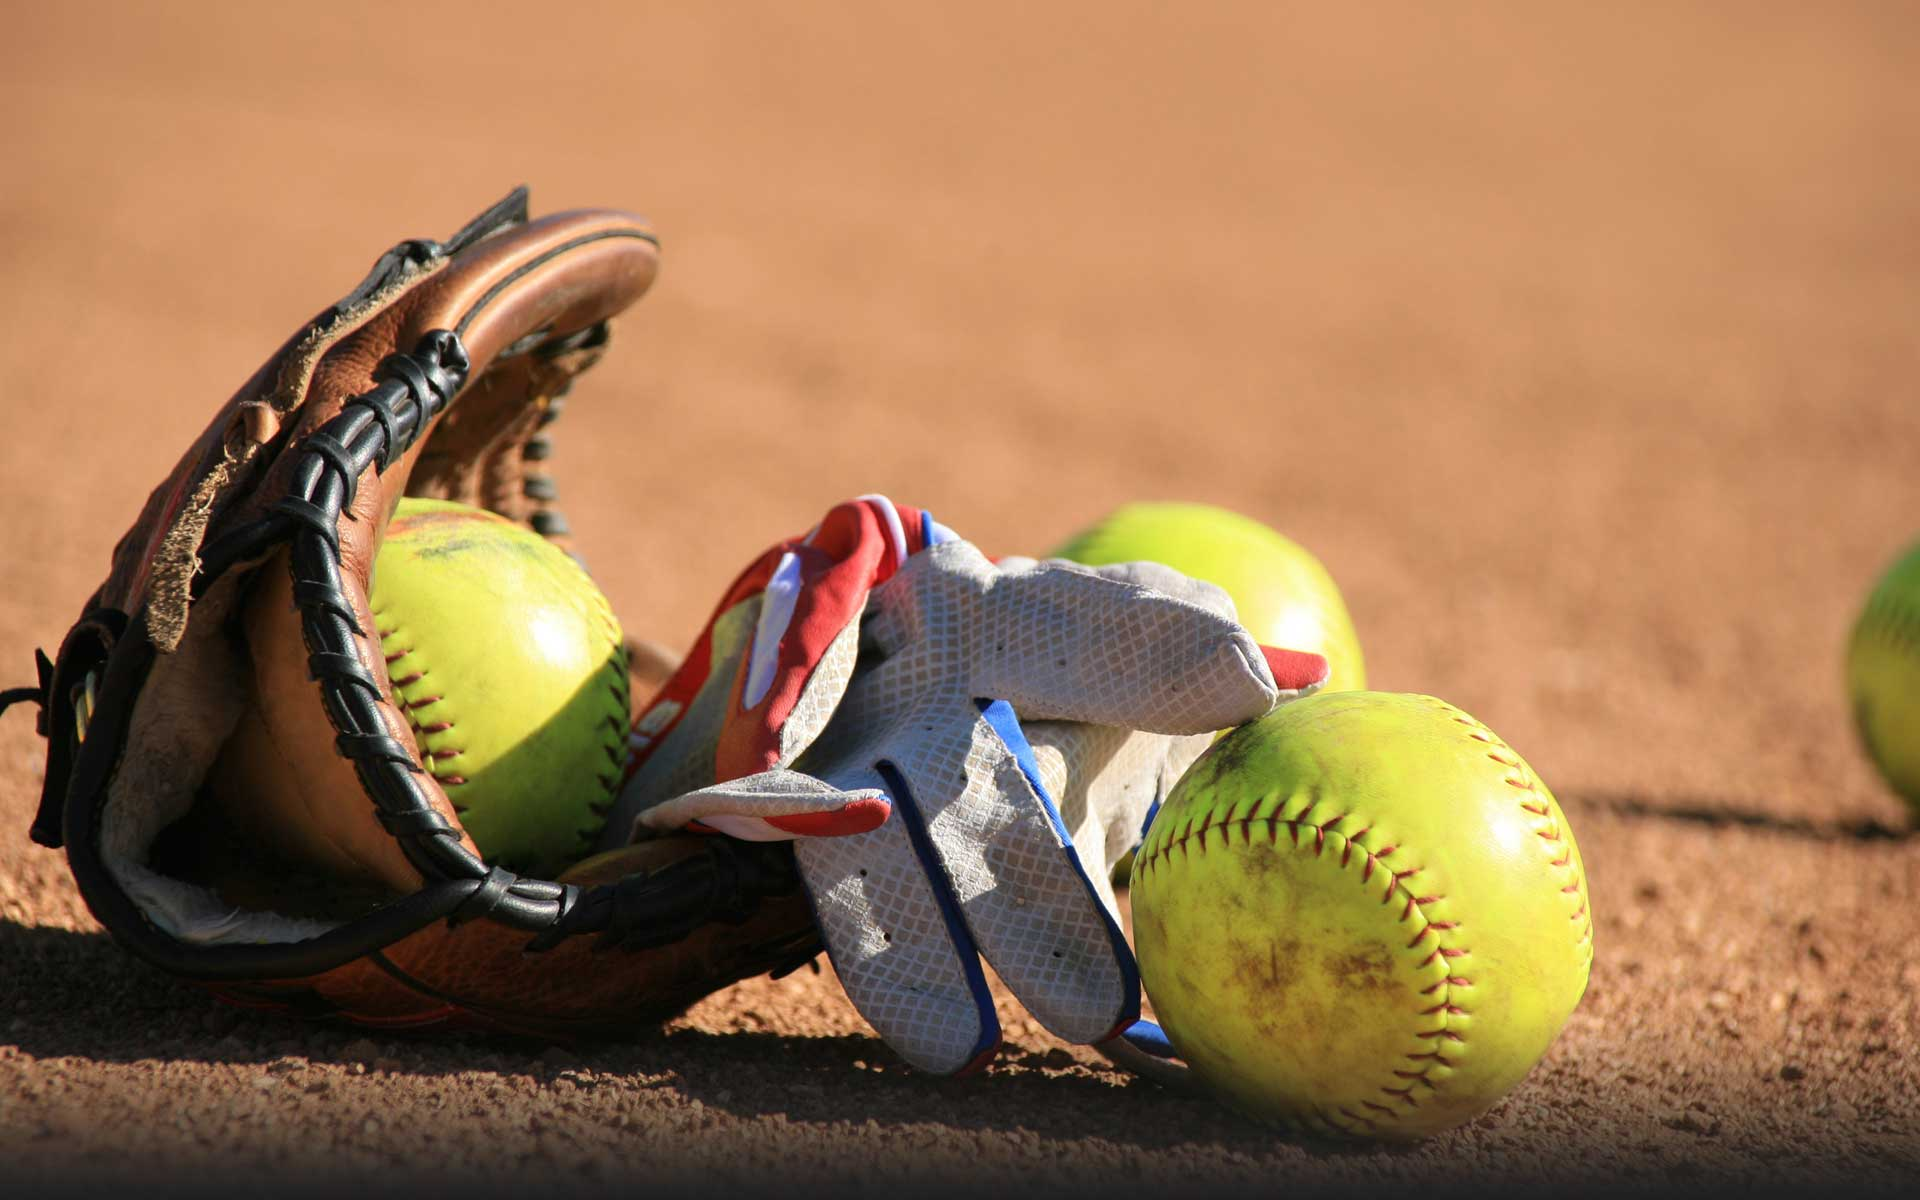 Softball Drills and Practice Plans: Infield, Outfield, and Team Drills